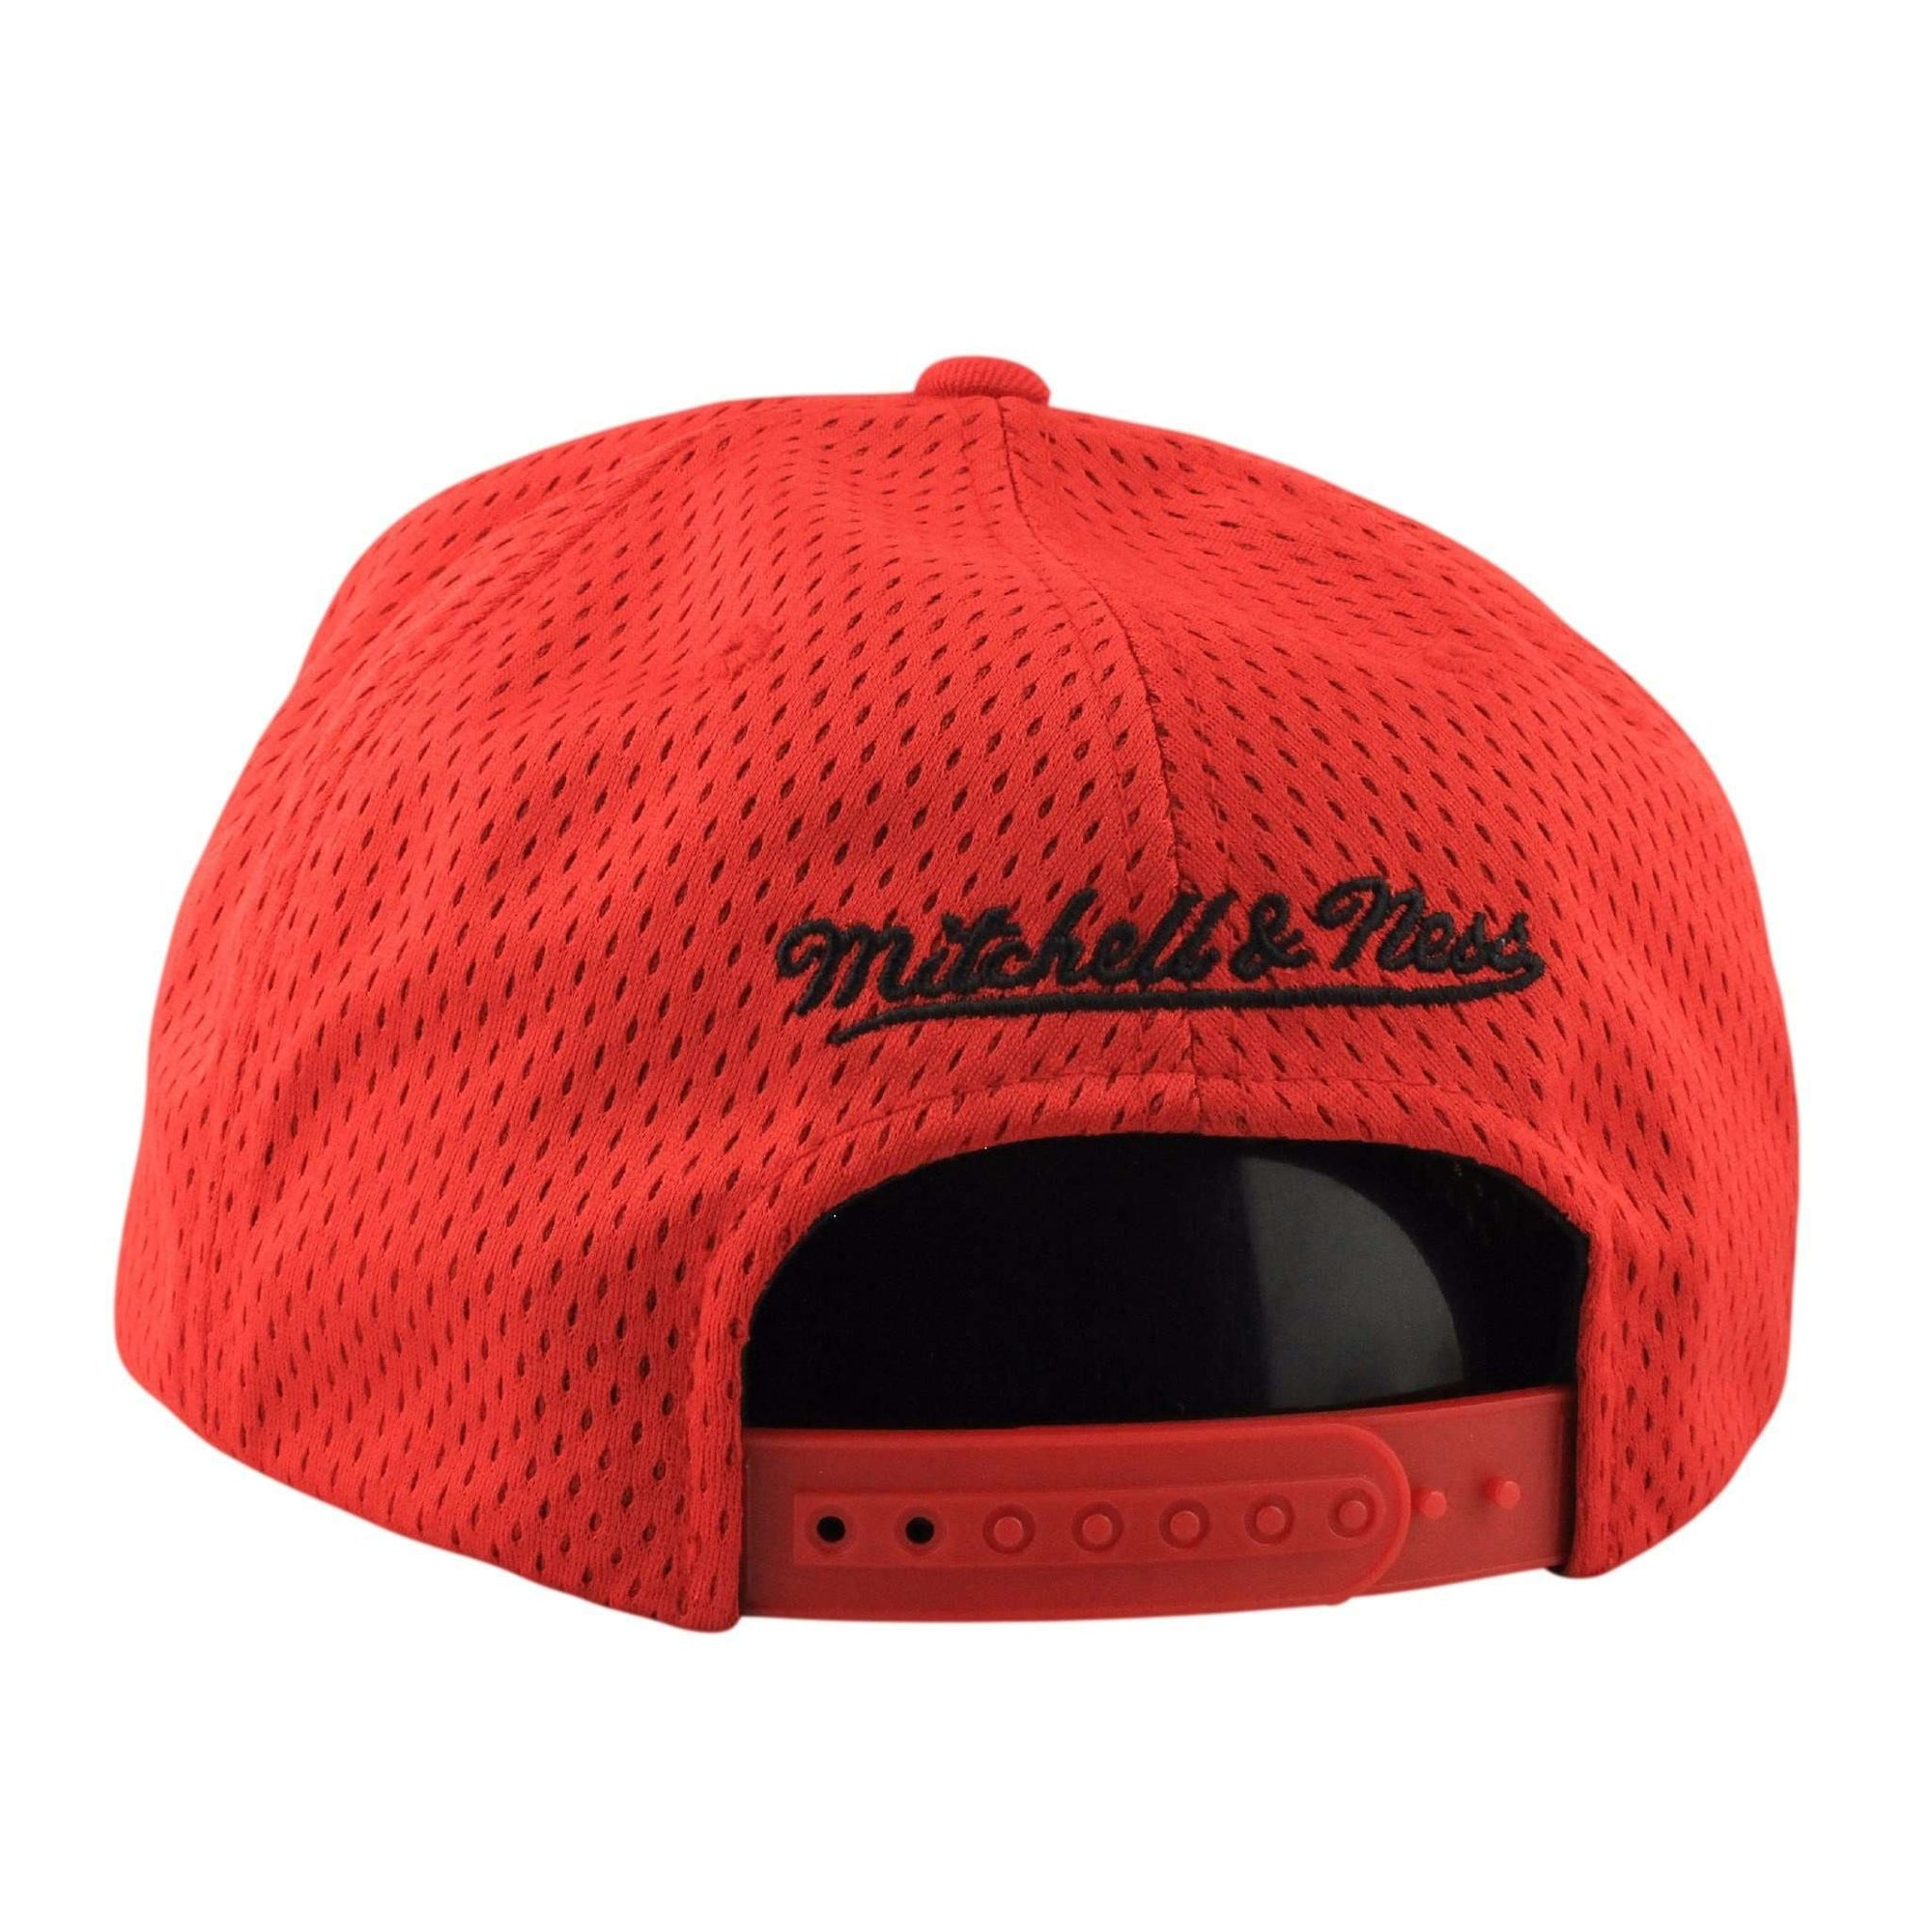 c9c33253b ... reduced mitchell and ness chicago bulls jersey mesh red red snapback  50afe a365a